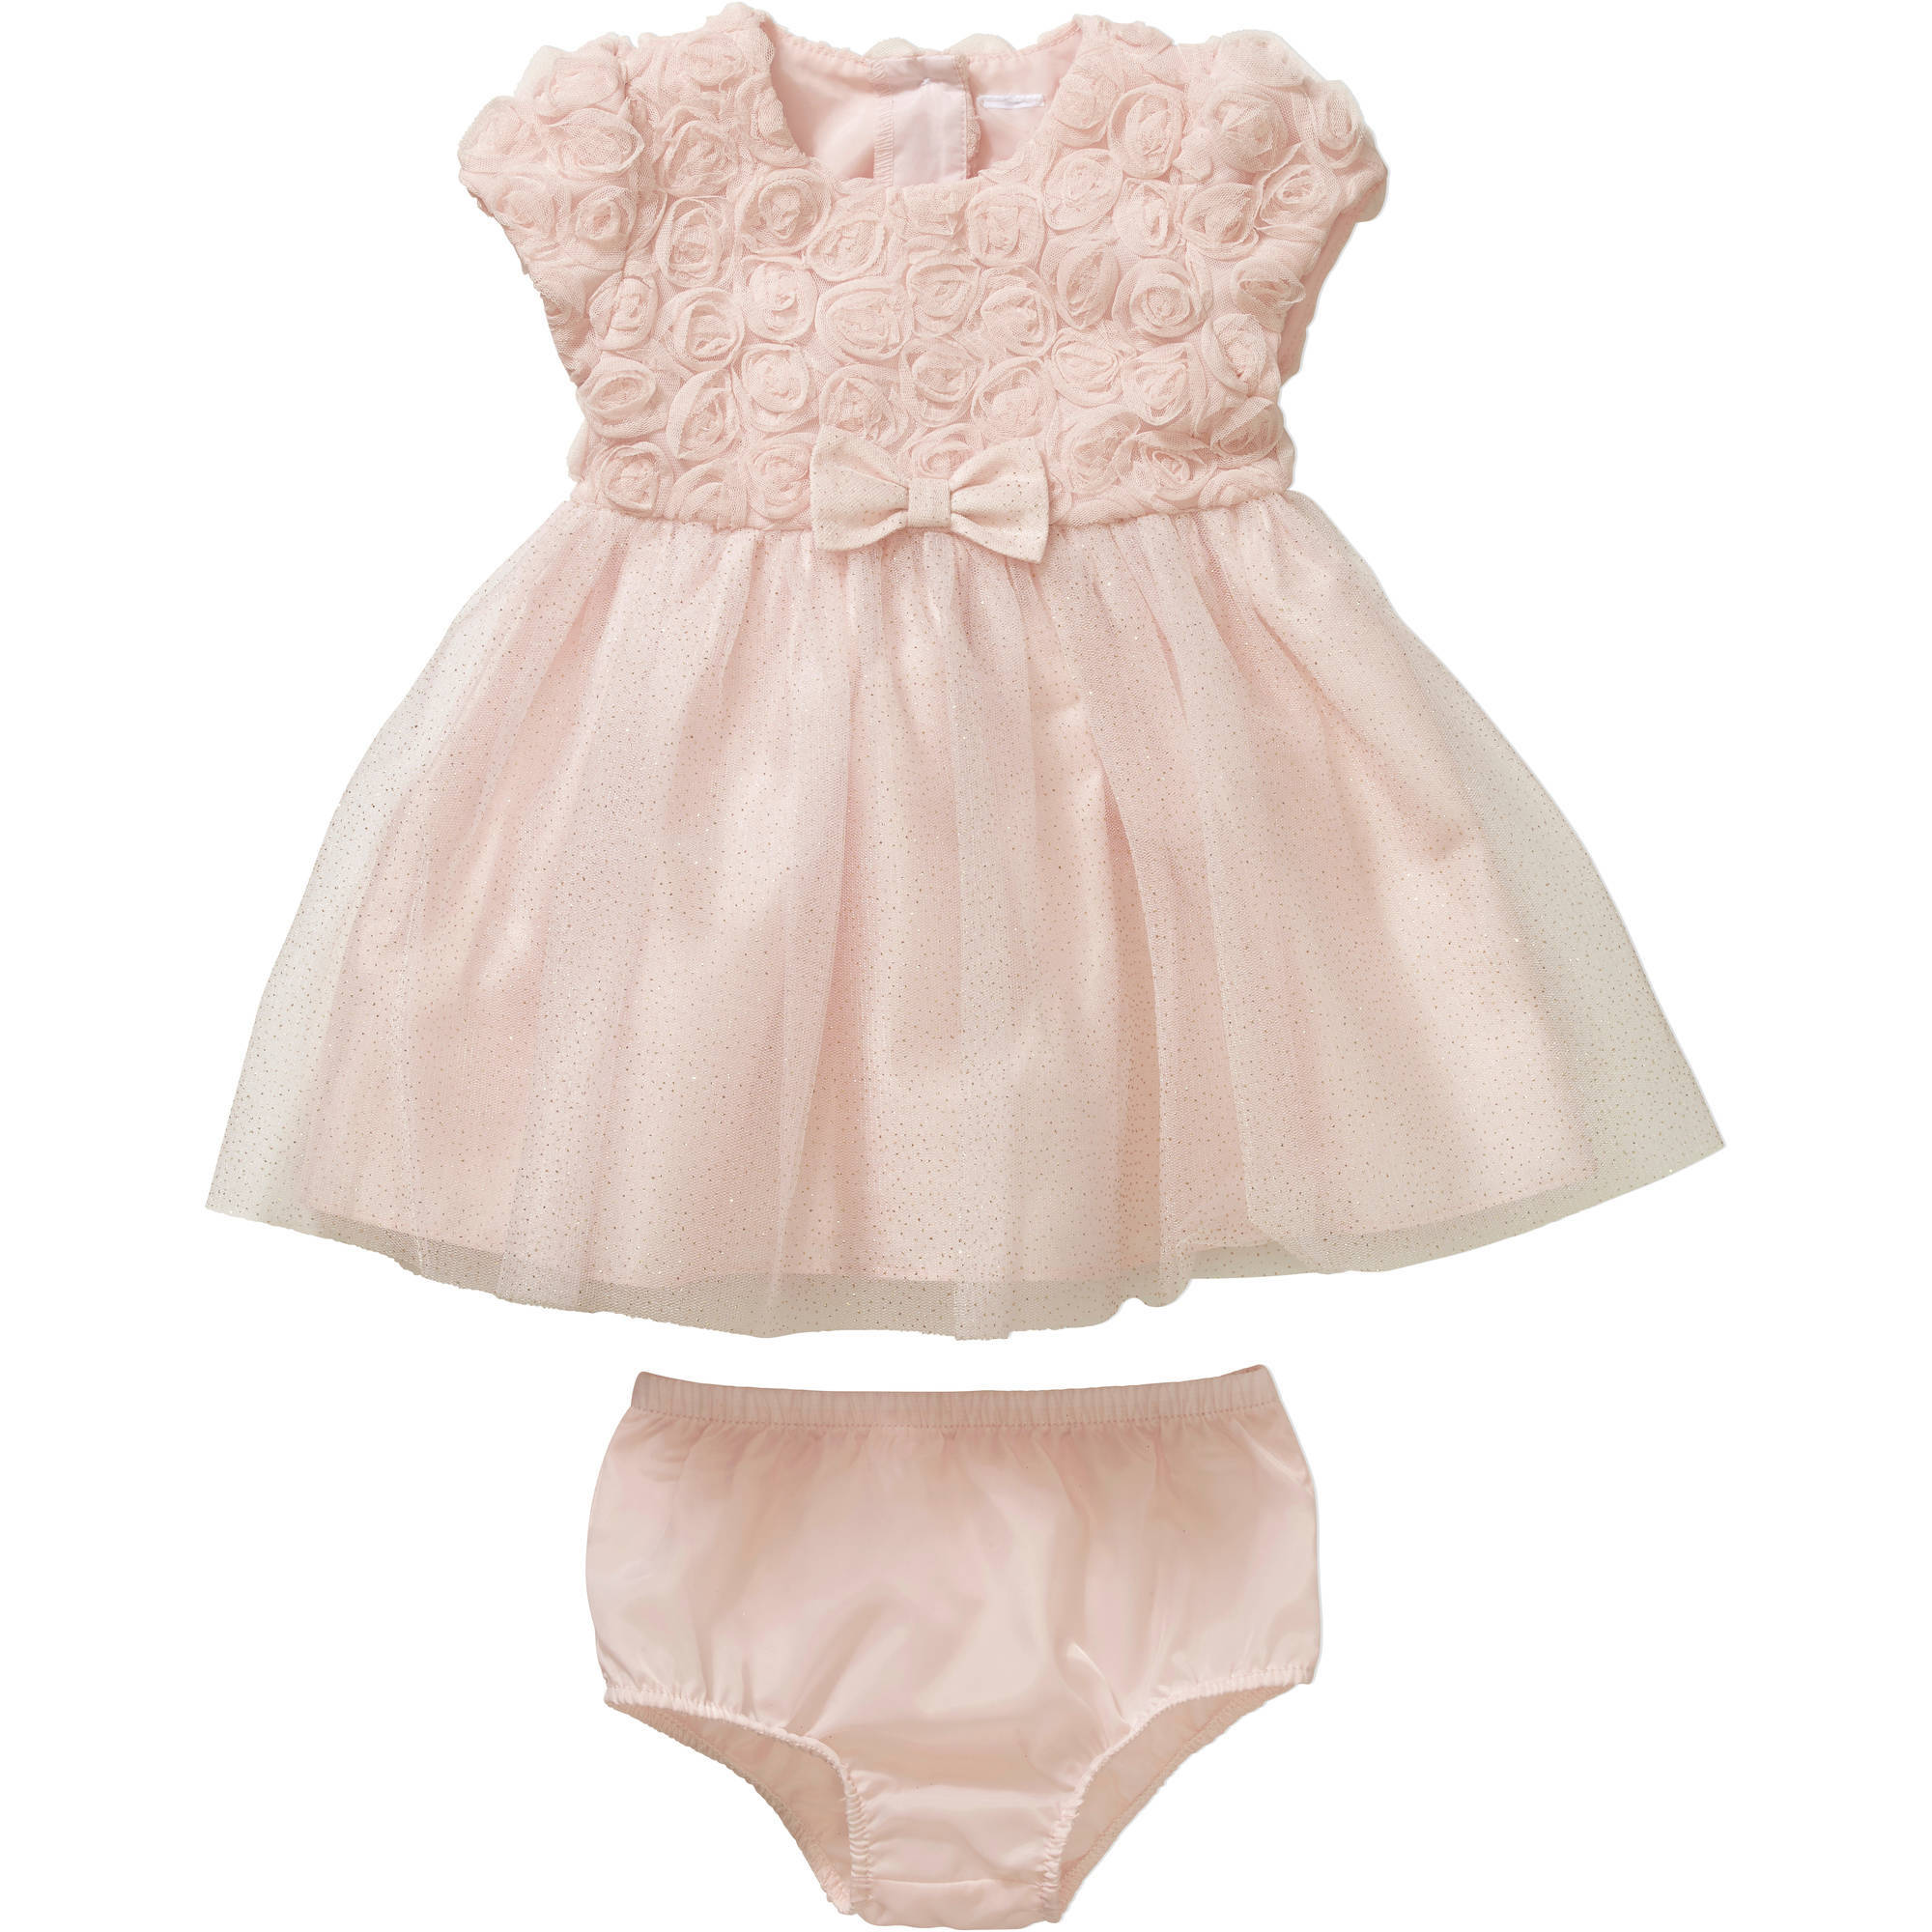 George Newborn Baby Girls' Soutache Ballerina Holiday or Special Occasion Dress